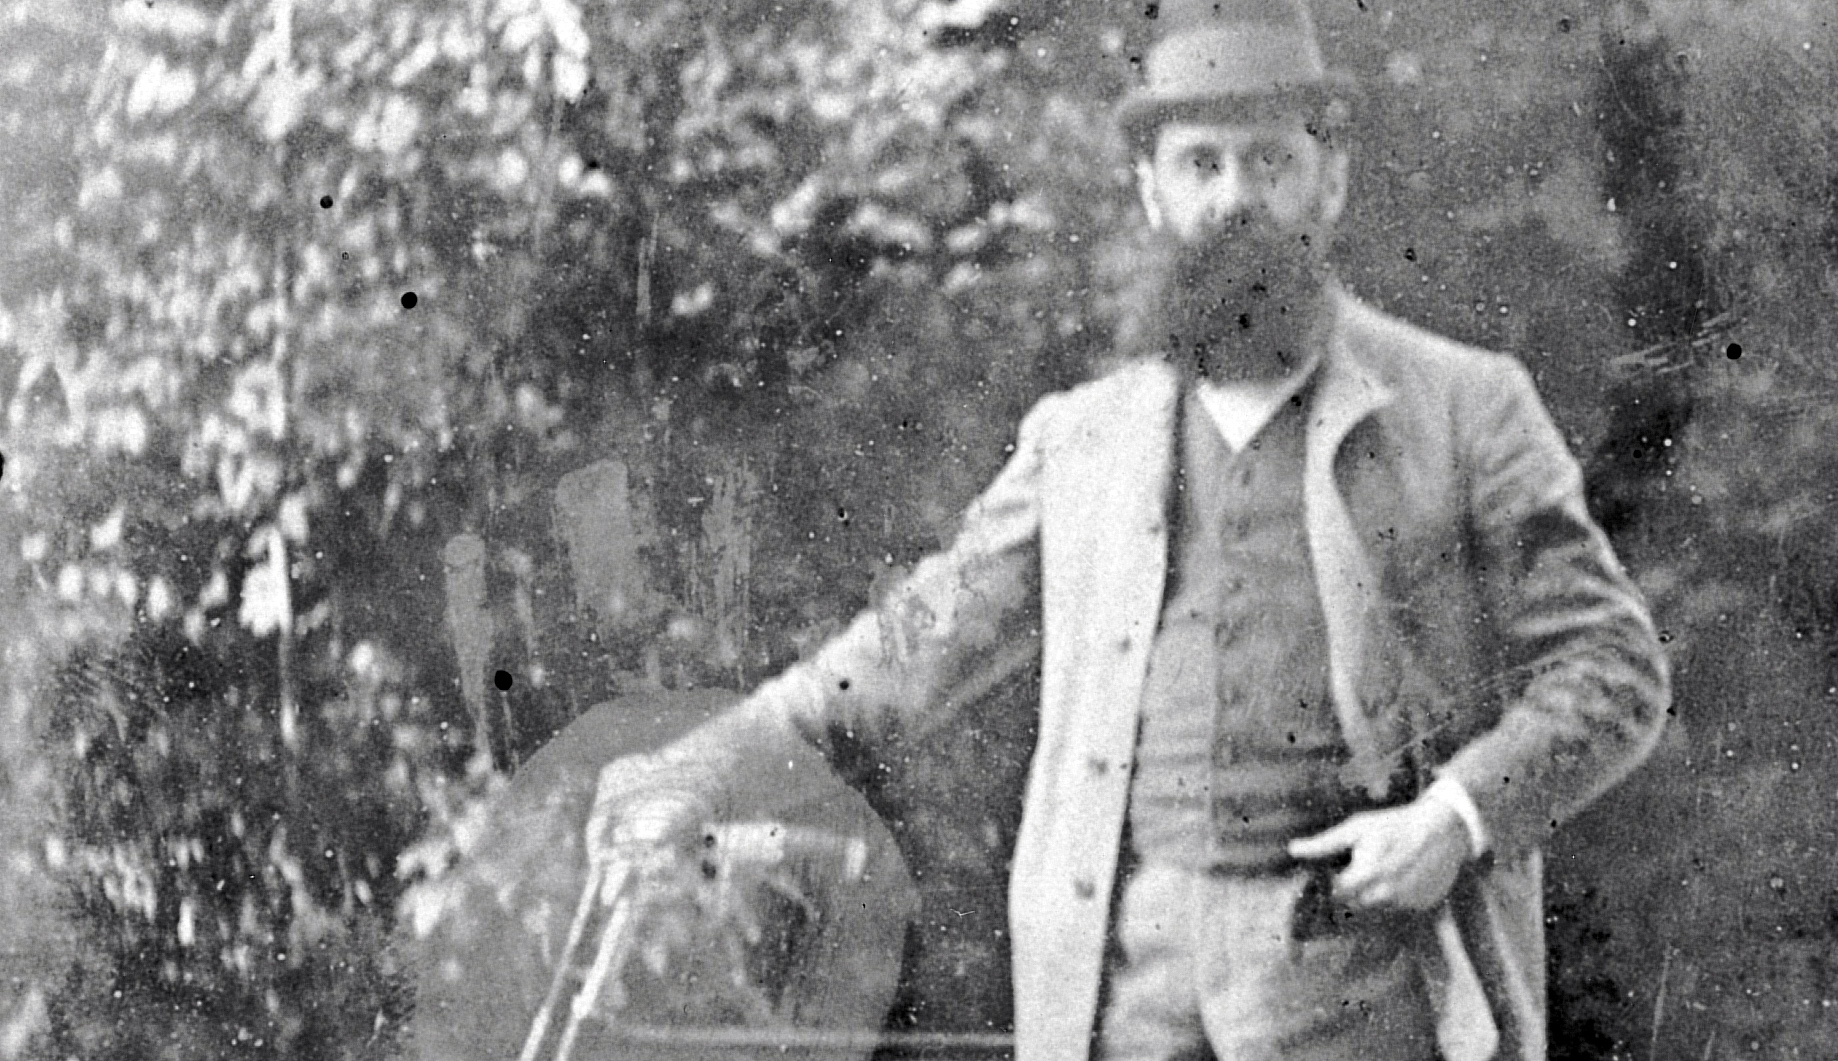 Theodor Herzl in Altaussee, Austria in August 1900. Imagno/Getty Images.